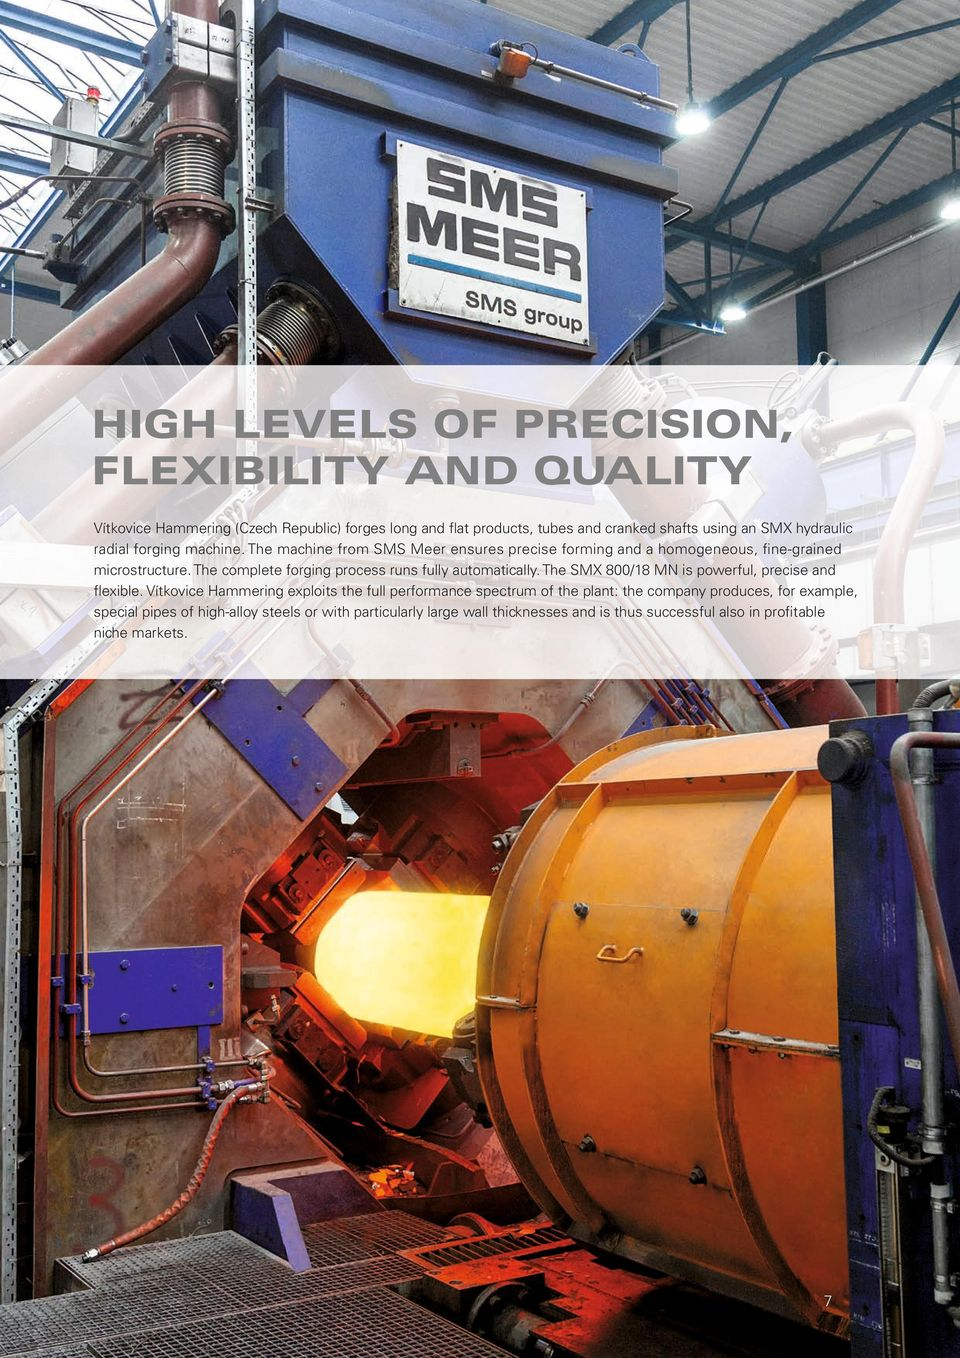 The complete forging process runs fully automatically. The SMX 800/18 MN is powerful, precise and flexible.